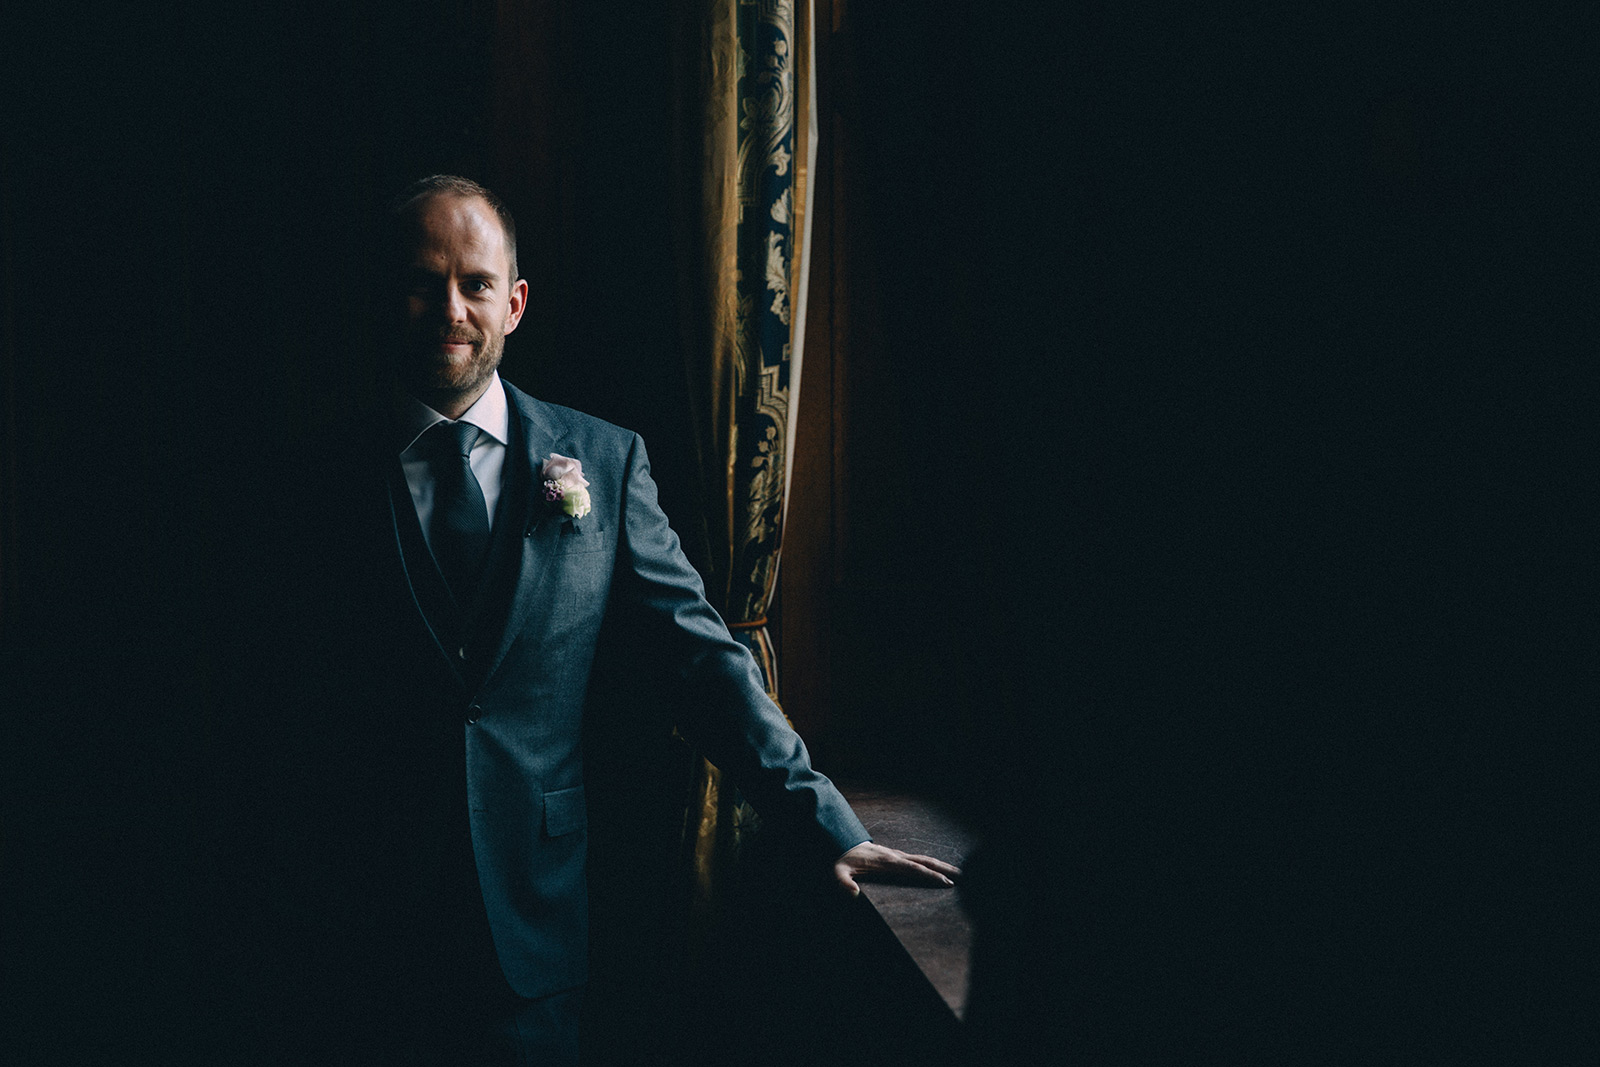 One-King-West-Toronto-wedding-photography_Sam-Wong-of-Visual-Cravings_KnR-22